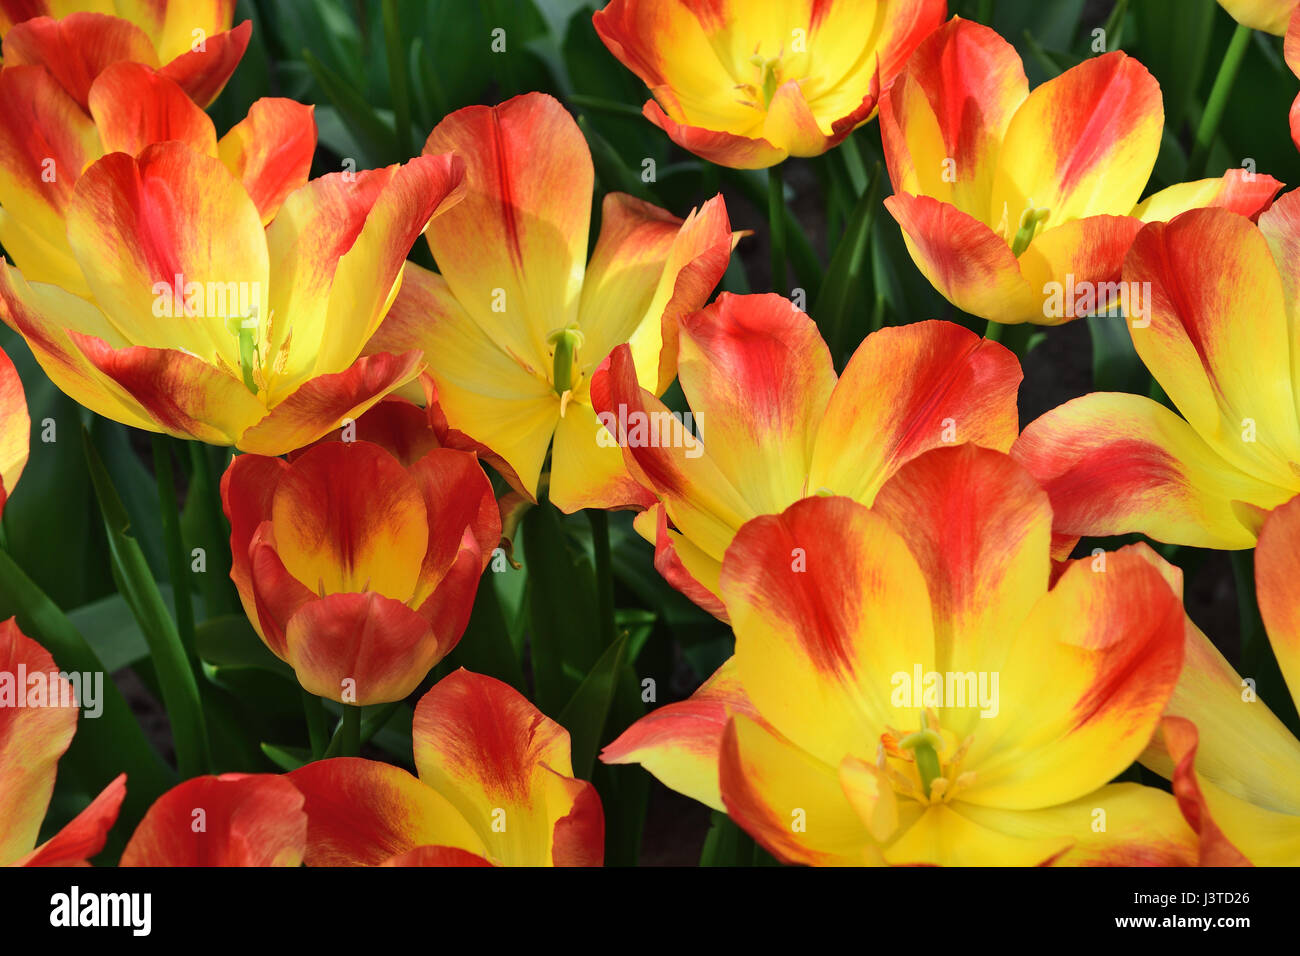 Open orange and yellow tulips that look like a fire stock photo open orange and yellow tulips that look like a fire izmirmasajfo